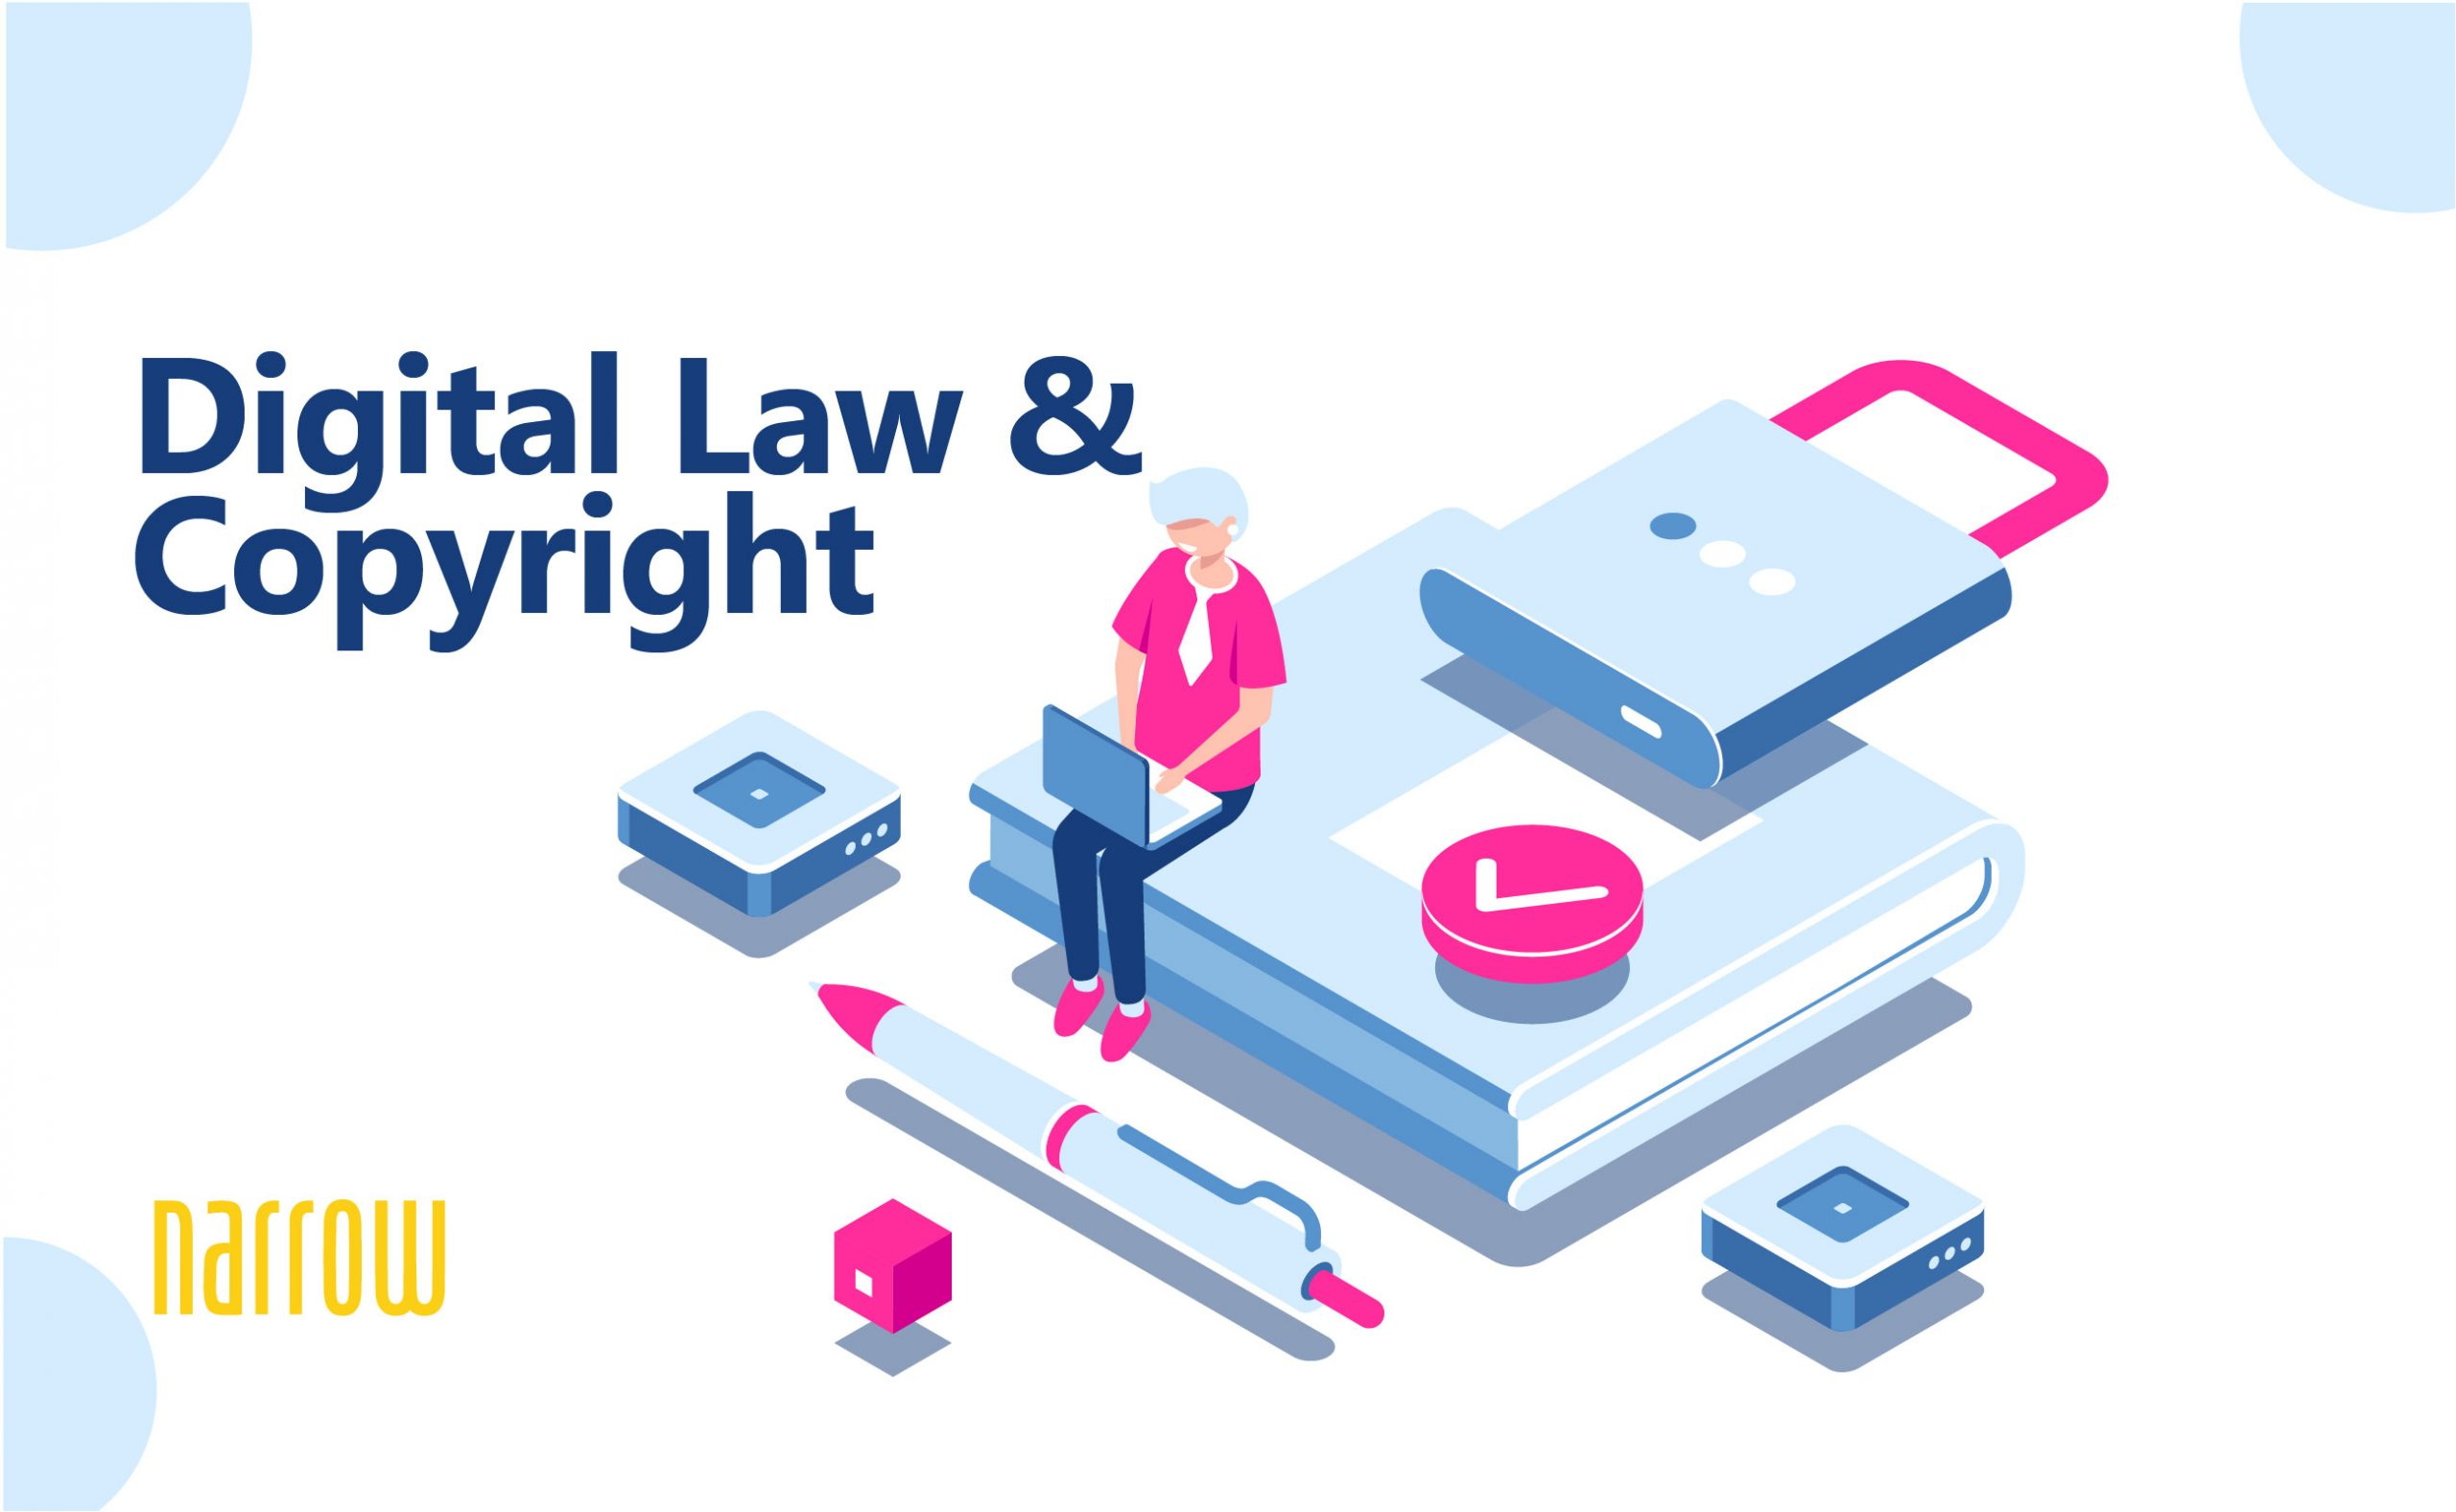 Copyright Website's Content and Digital Law